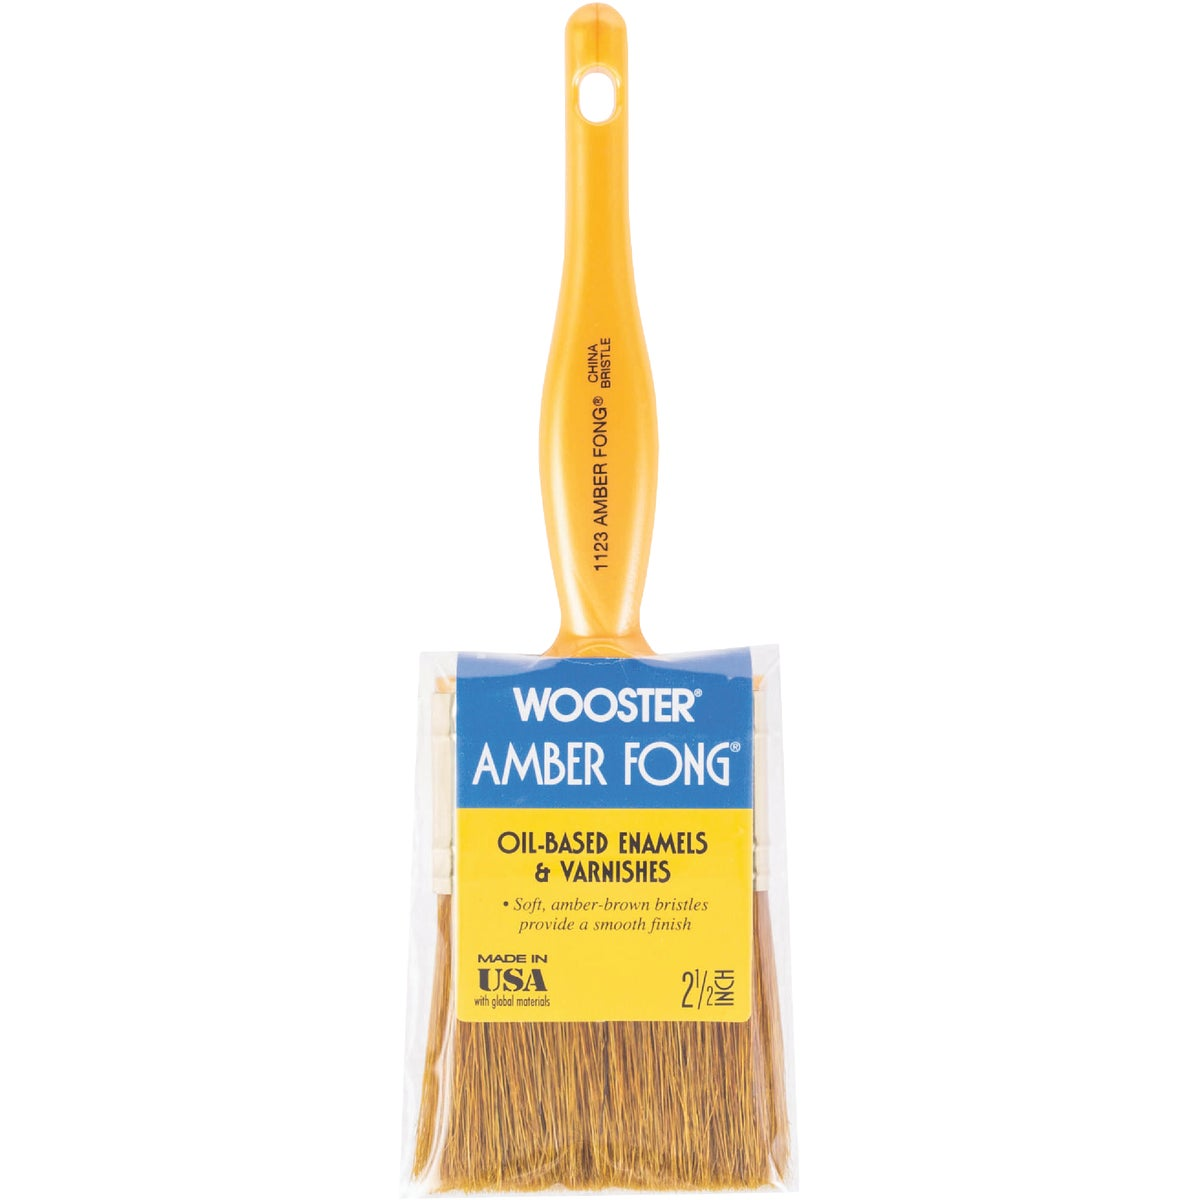 "2.5"" AMBR FONG PNT BRUSH - 1123-2 1/2"" by Wooster Brush Co"